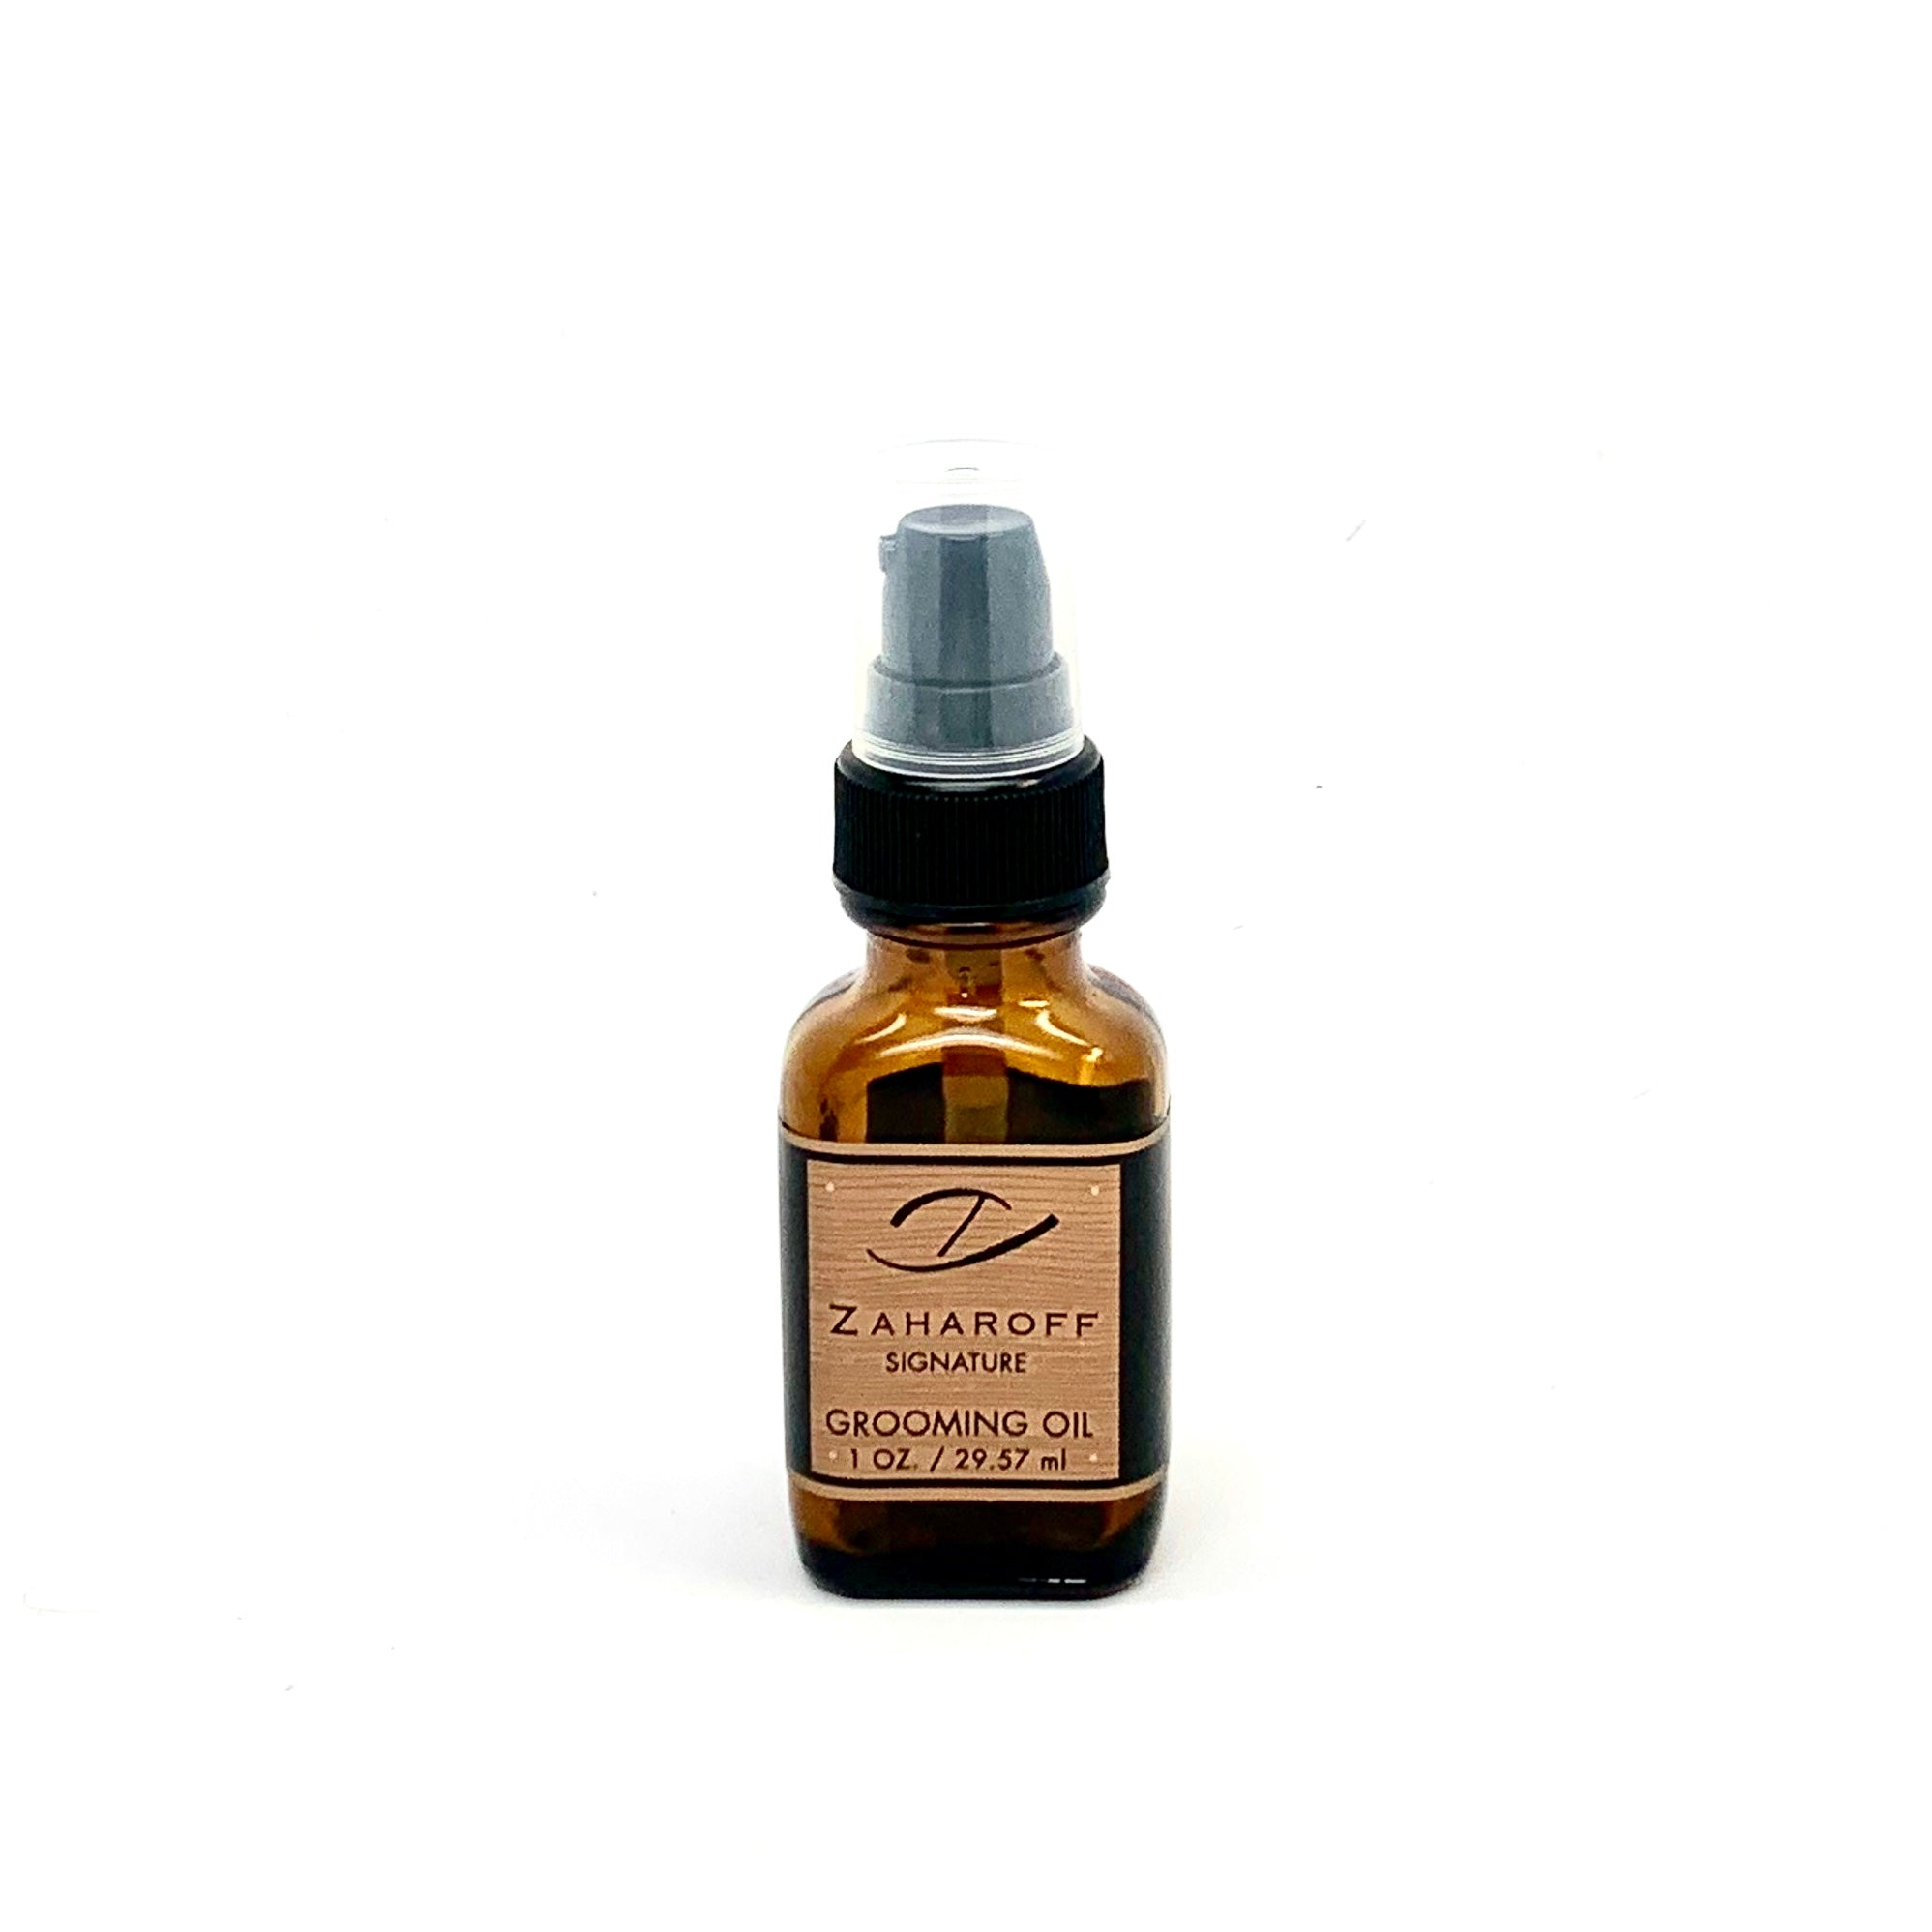 Zaharoff Signature Grooming Oil